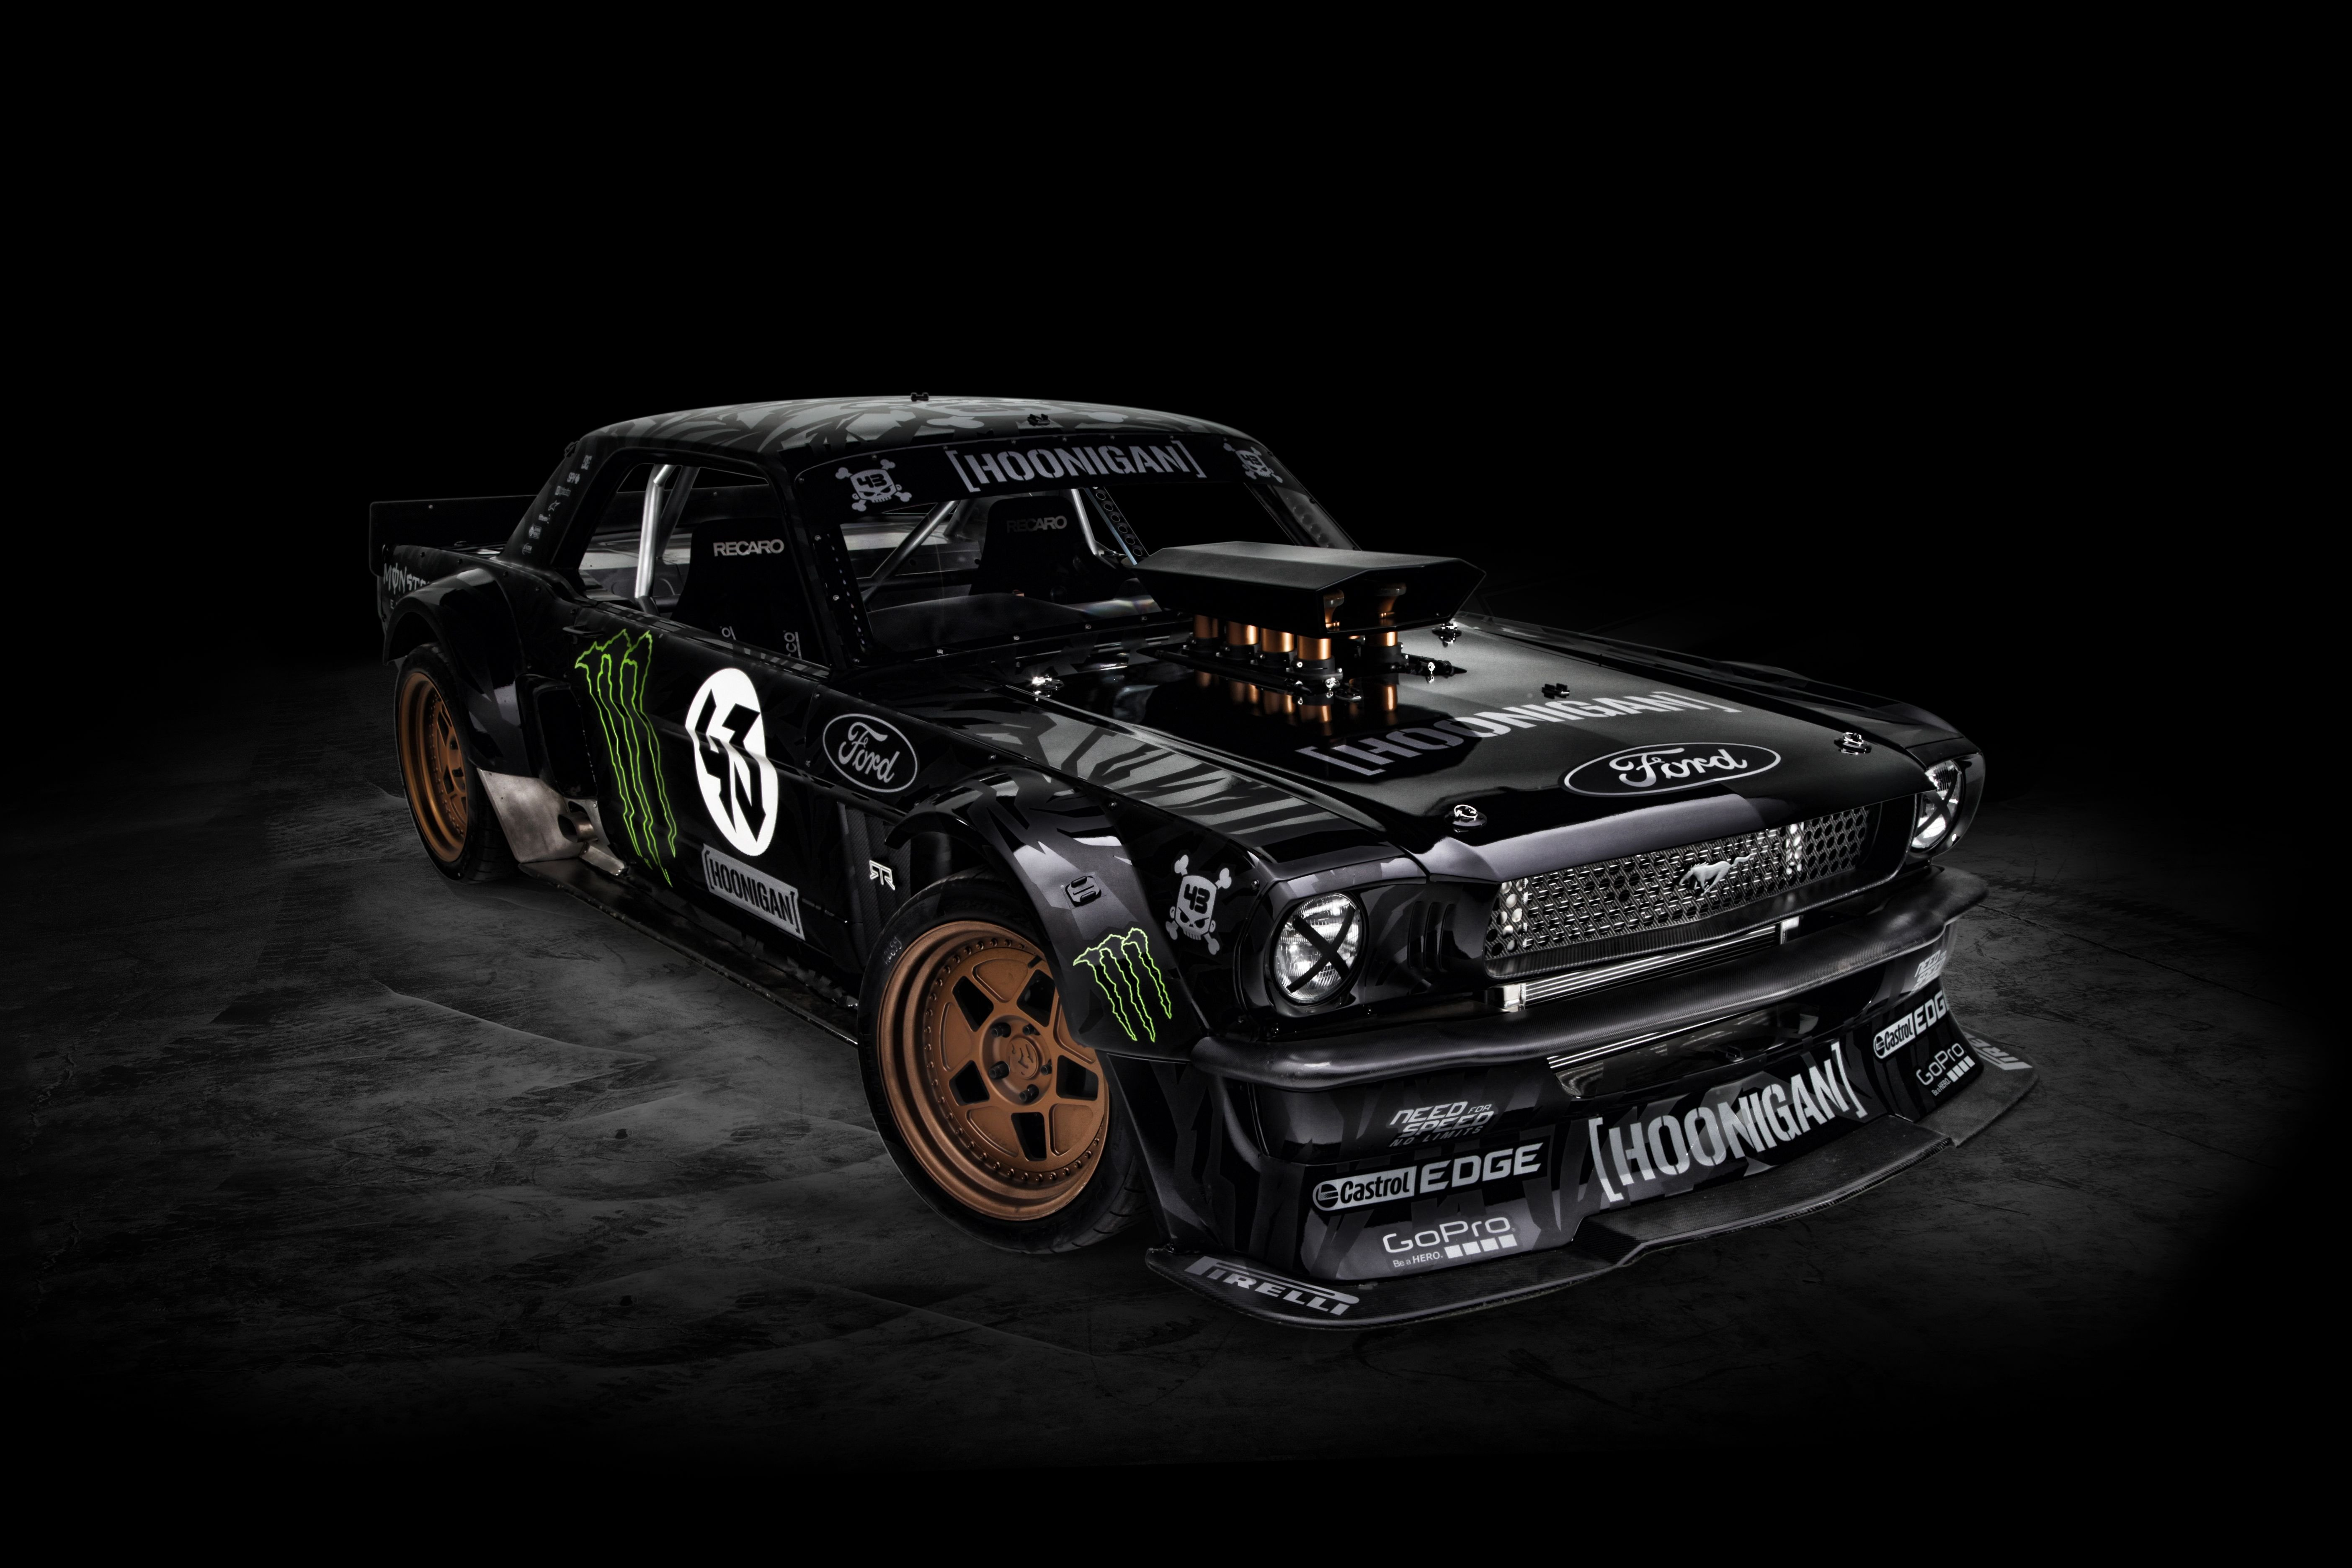 ken block mustang wallpaper wallpapersafari. Black Bedroom Furniture Sets. Home Design Ideas